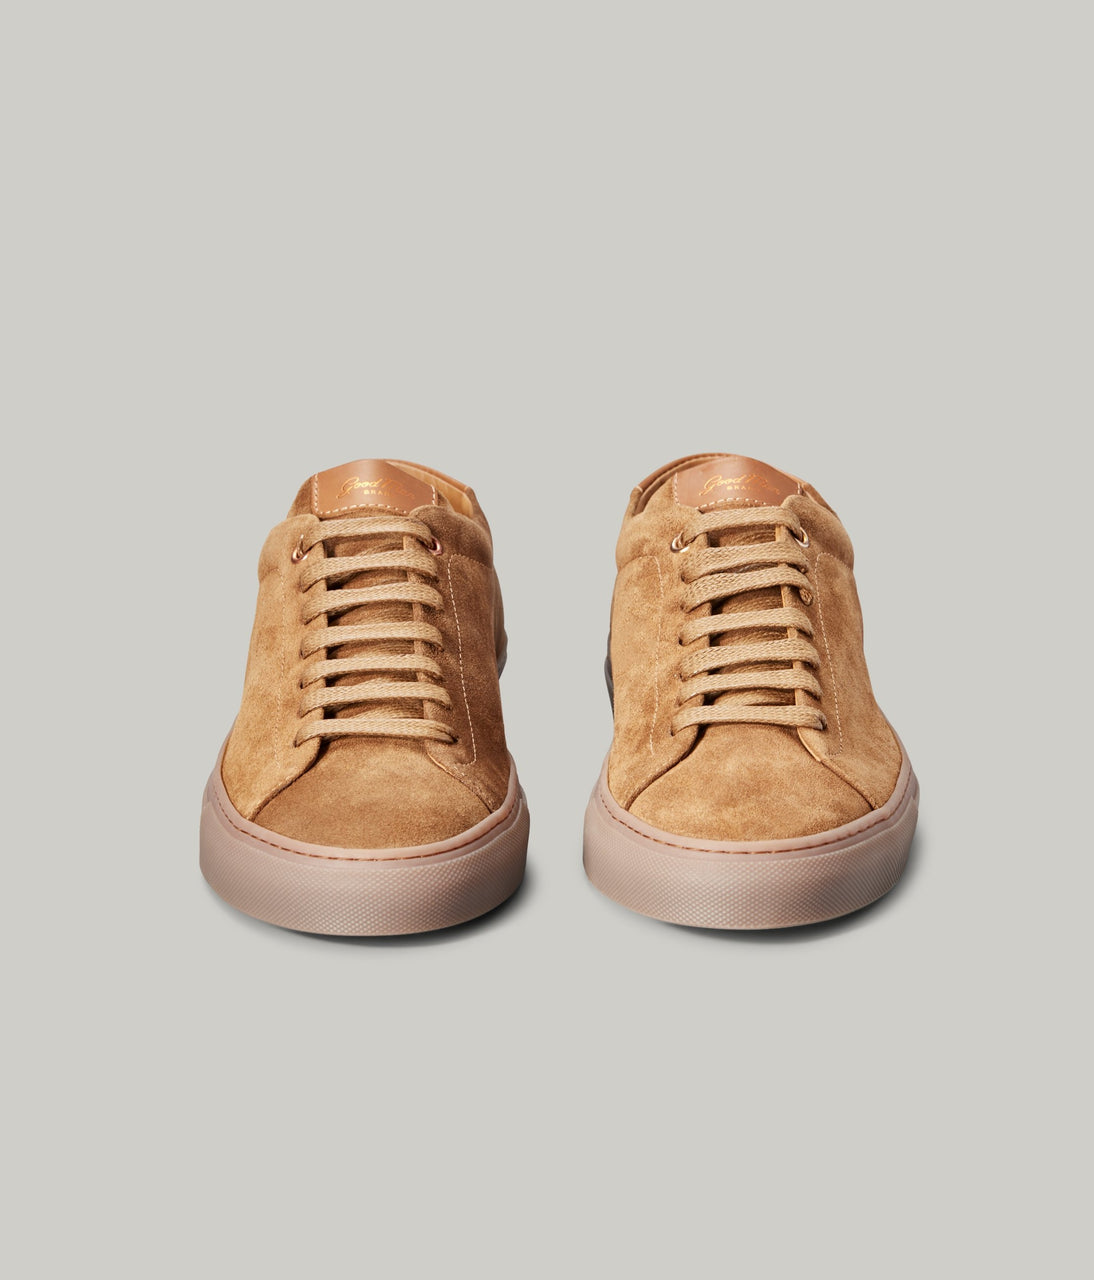 Edge Mono Lo Top Sneaker in Suede - Snuff - Good Man Brand - Edge Mono Lo Top Sneaker in Suede - Snuff